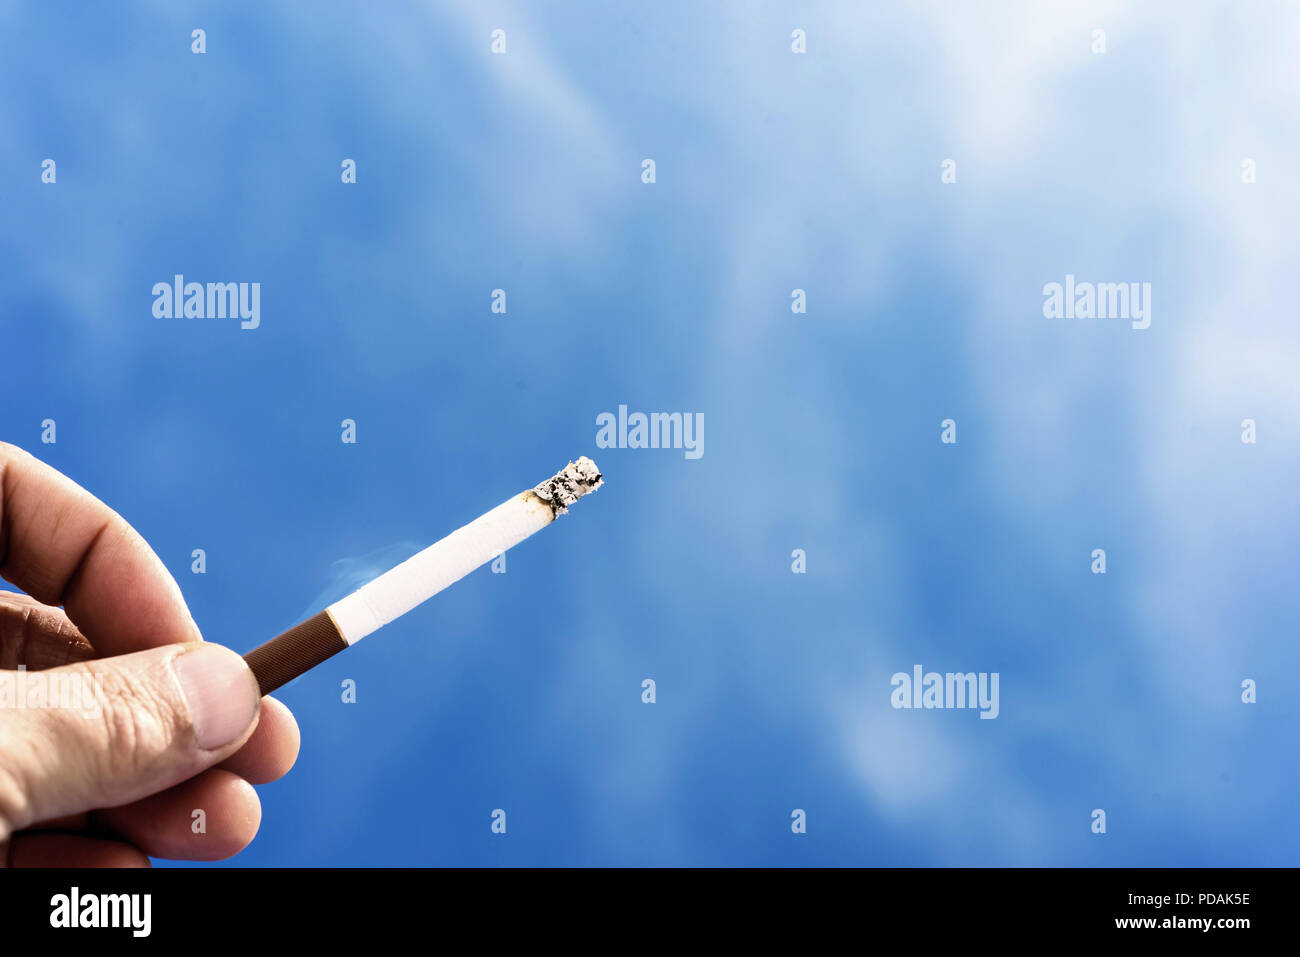 Single male hand holding a lit cigarette against a blue sky background with wisps of toxic smoke coming from the end of the cig. Copyspace area for ni Stock Photo